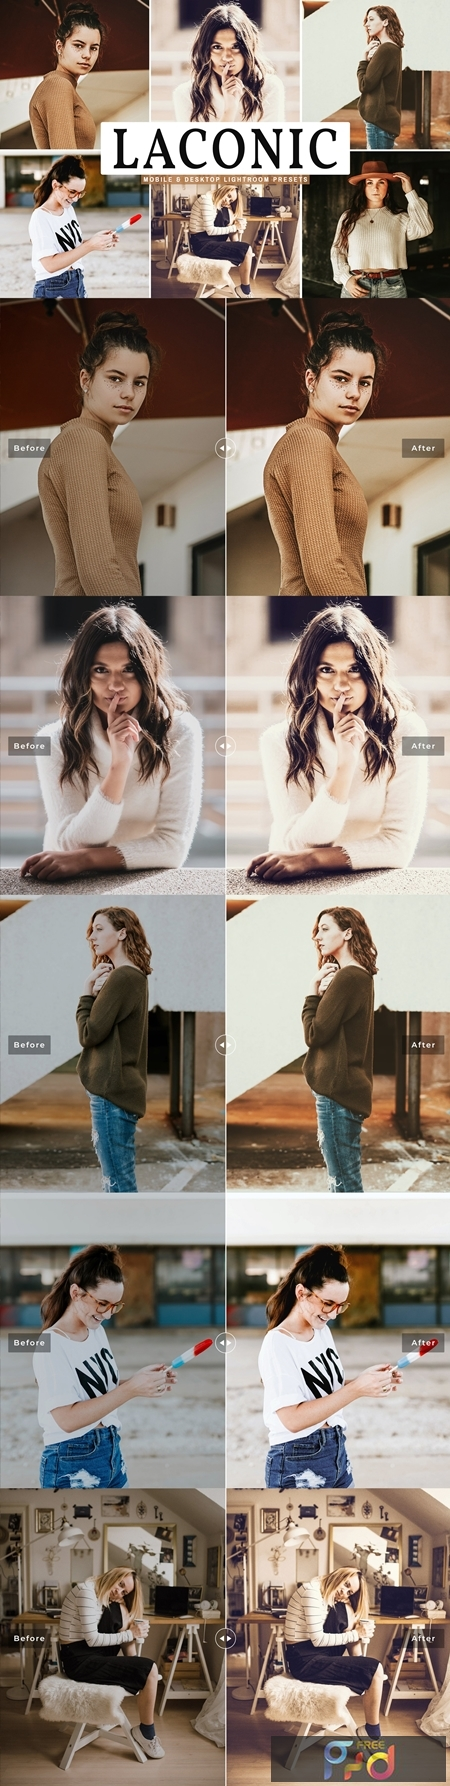 Laconic Mobile & Desktop Lightroom Presets 4657419 1